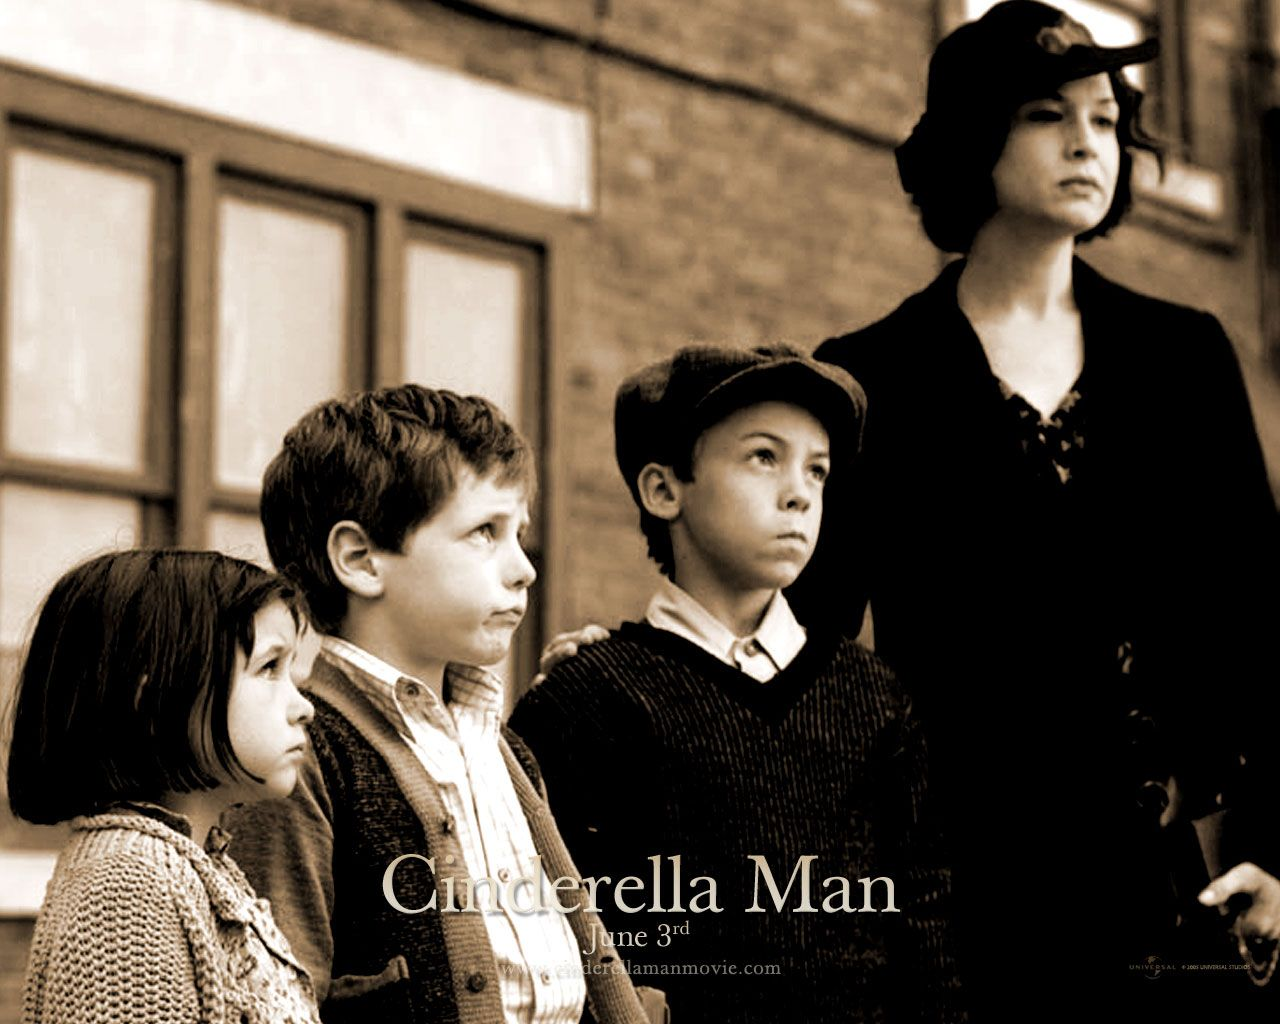 Cinderella Man Quotes Mesmerizing Cinderella Man  Ariel Waller Patrick Louis Connor Price And